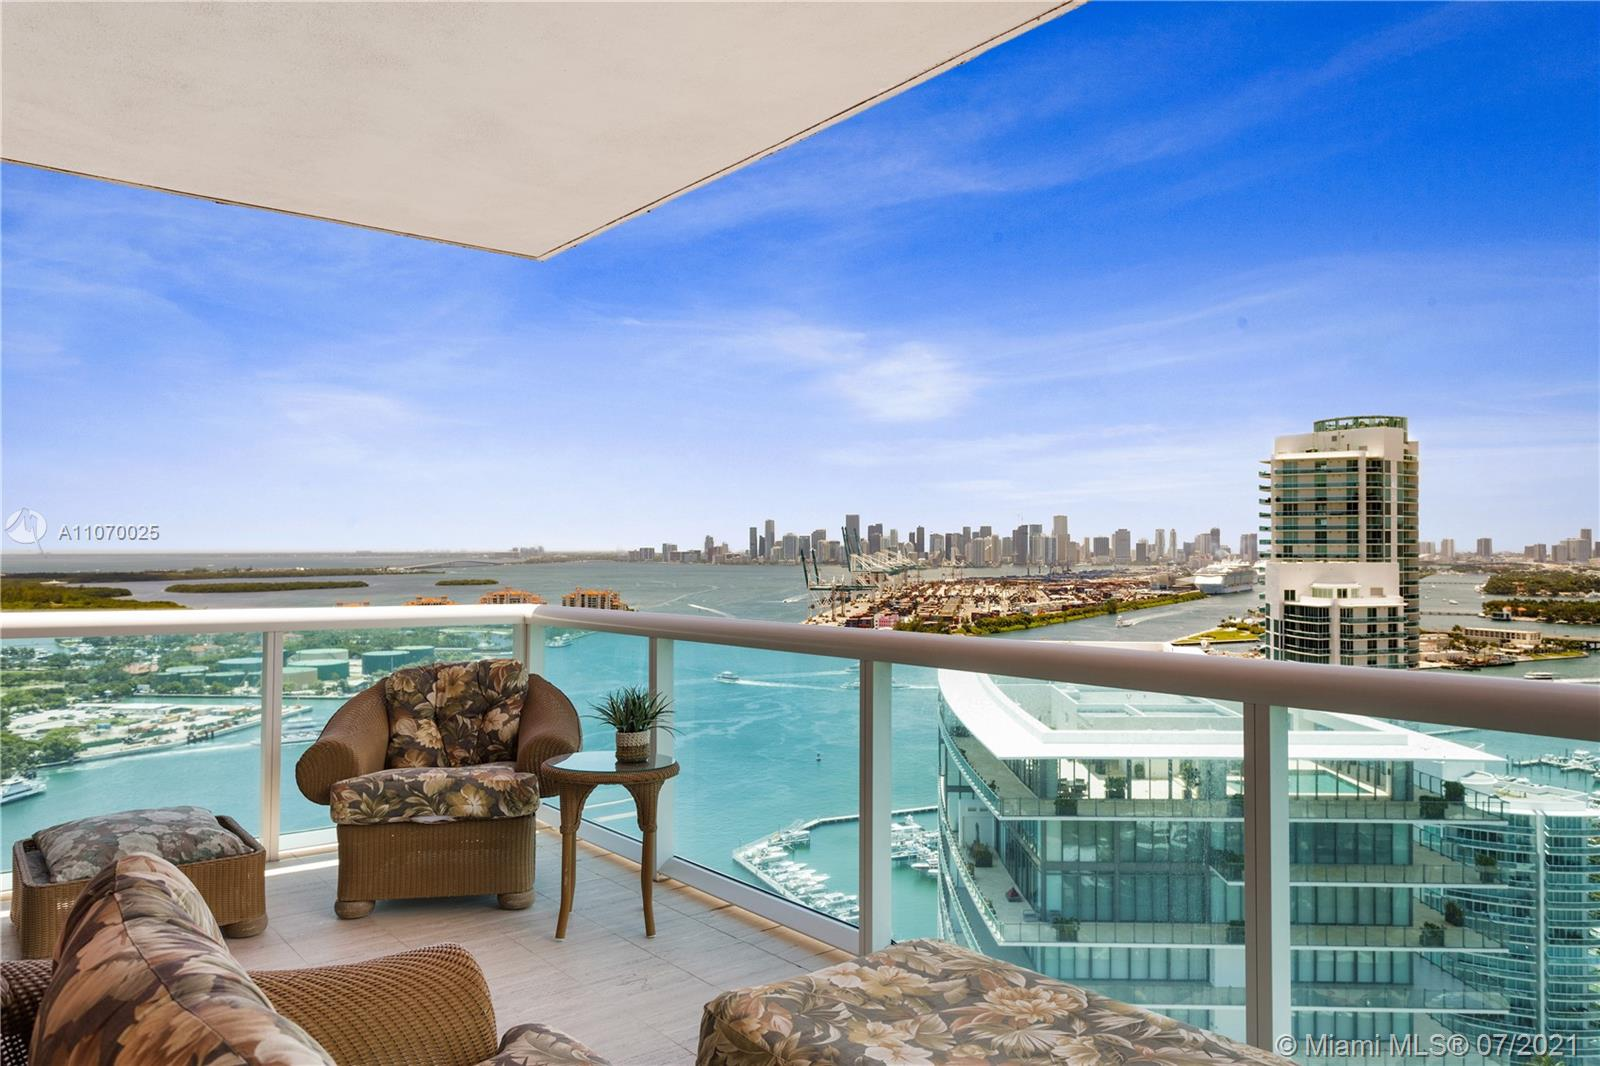 300 S Pointe Dr, Unit #3303 Luxury Real Estate